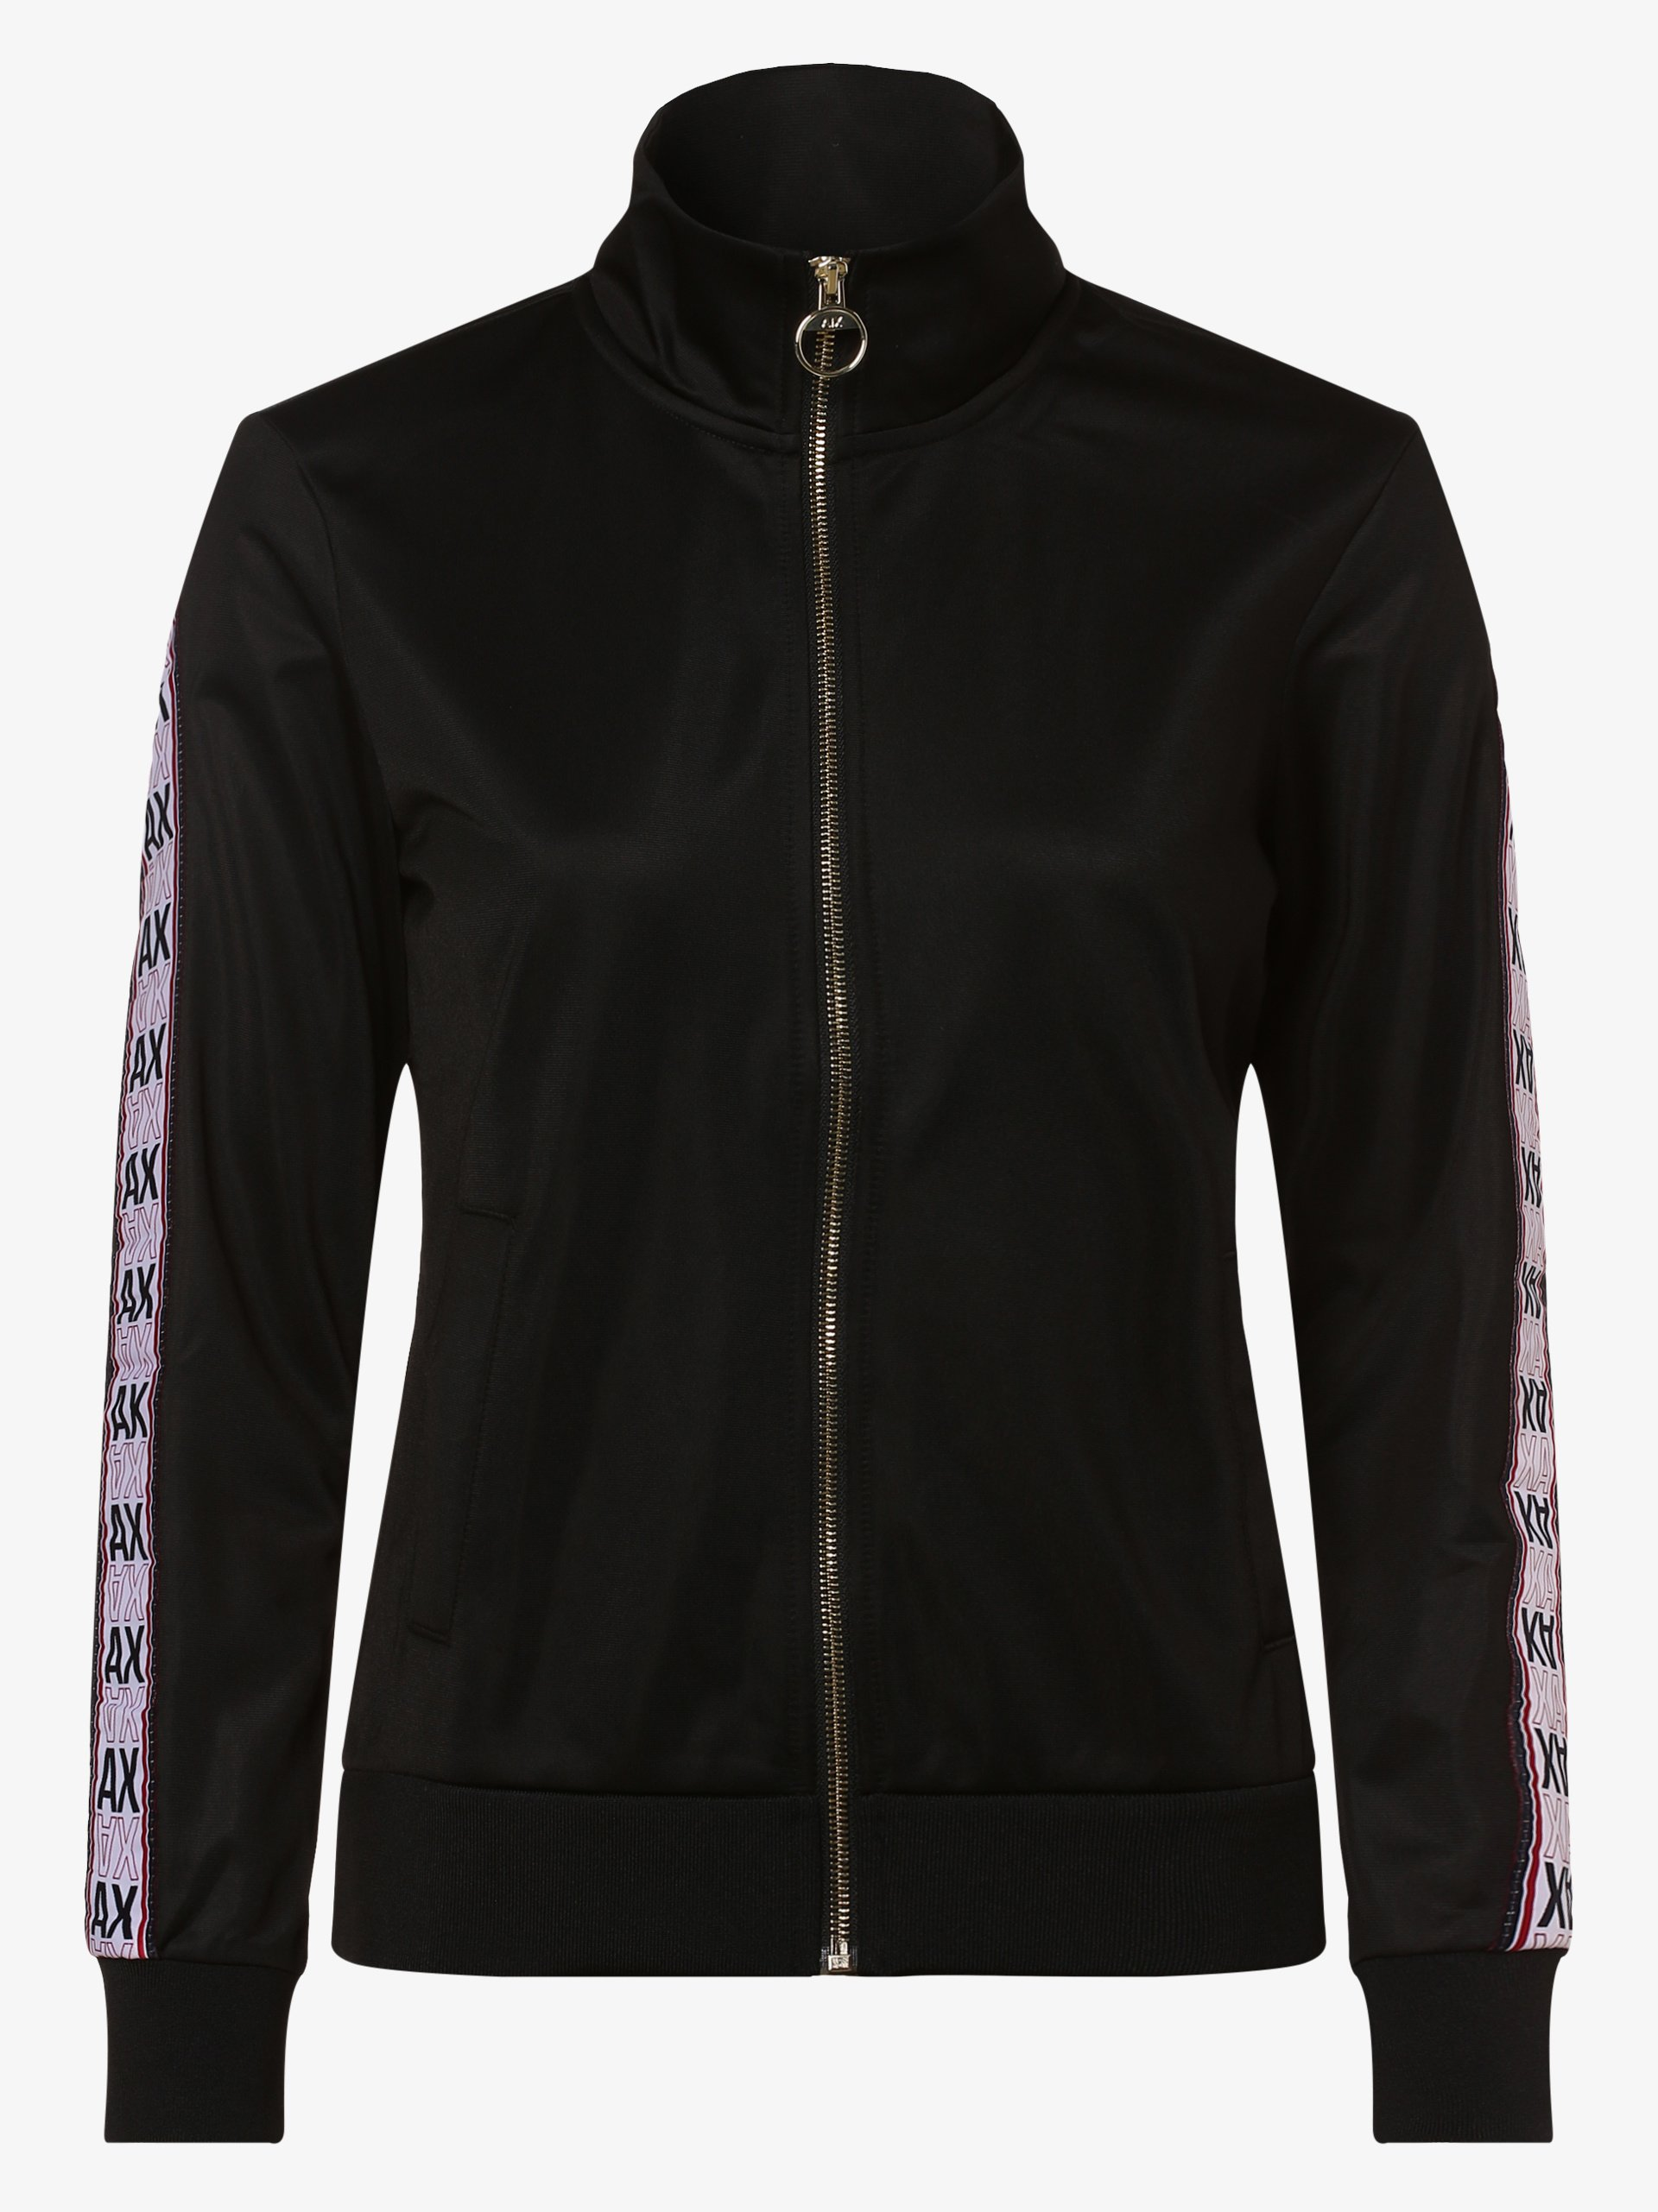 Armani Exchange Damen Sweatjacke